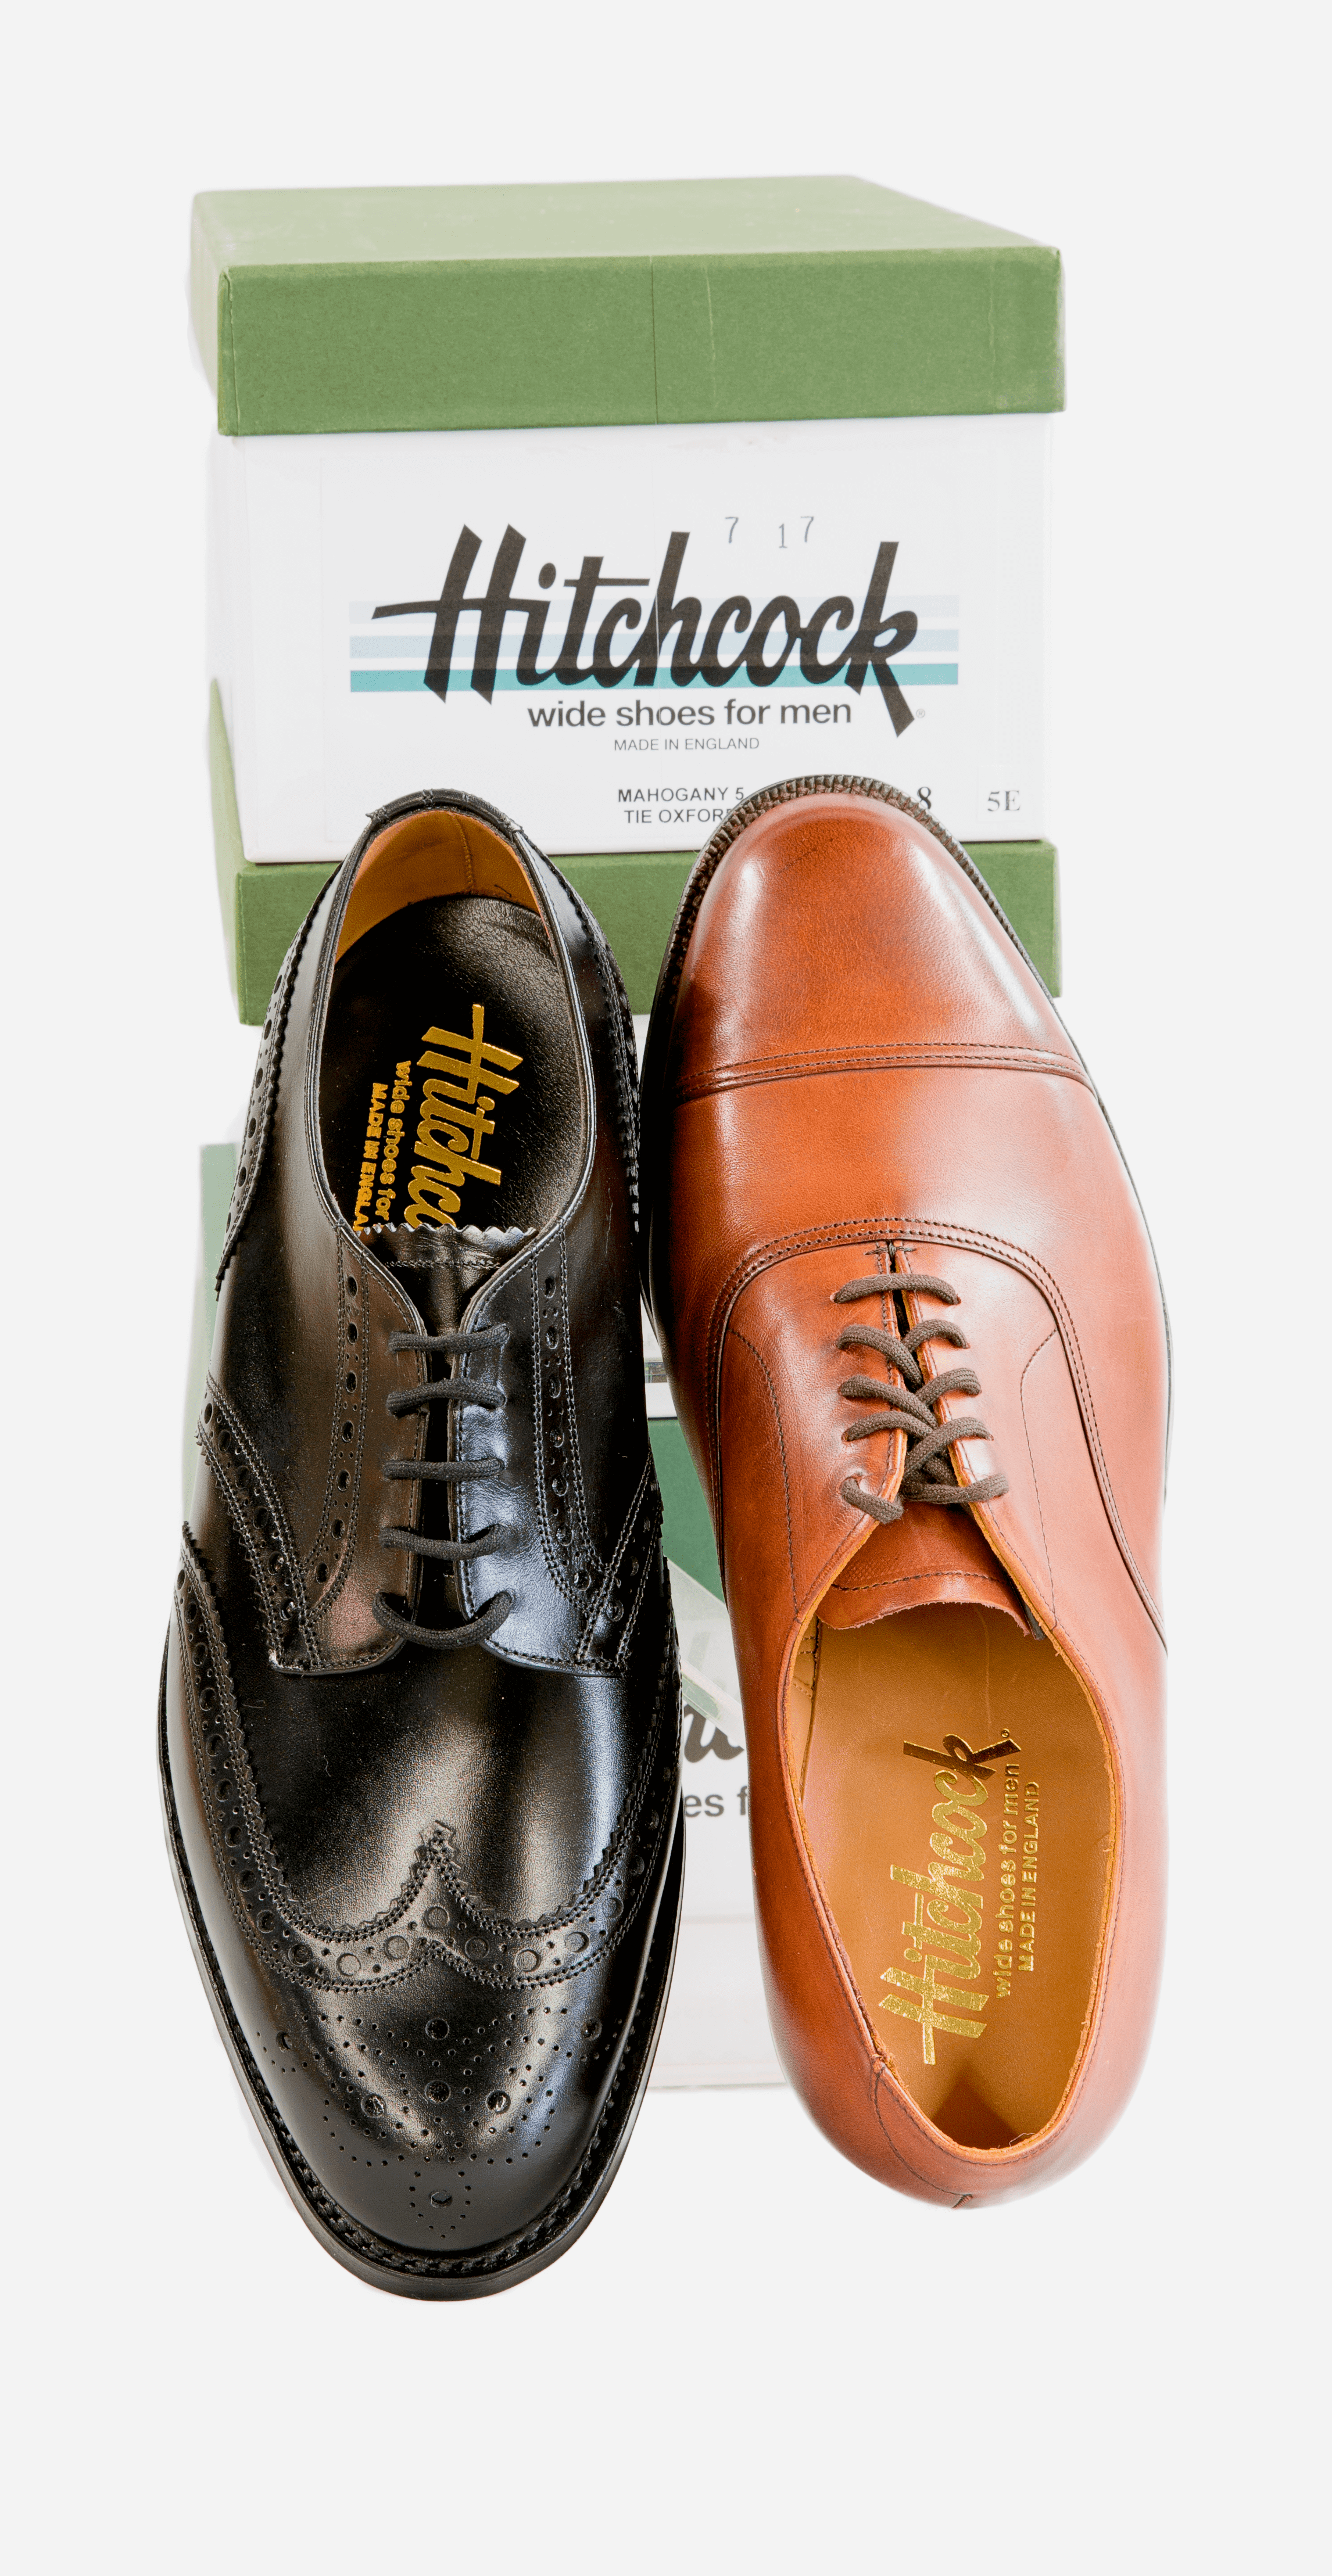 Fine English Men S Wide Oxfords Only At Hitchcock Shoes Exclusive Wide Shoes For Men Dress Shoes Men Hitchcock Shoes